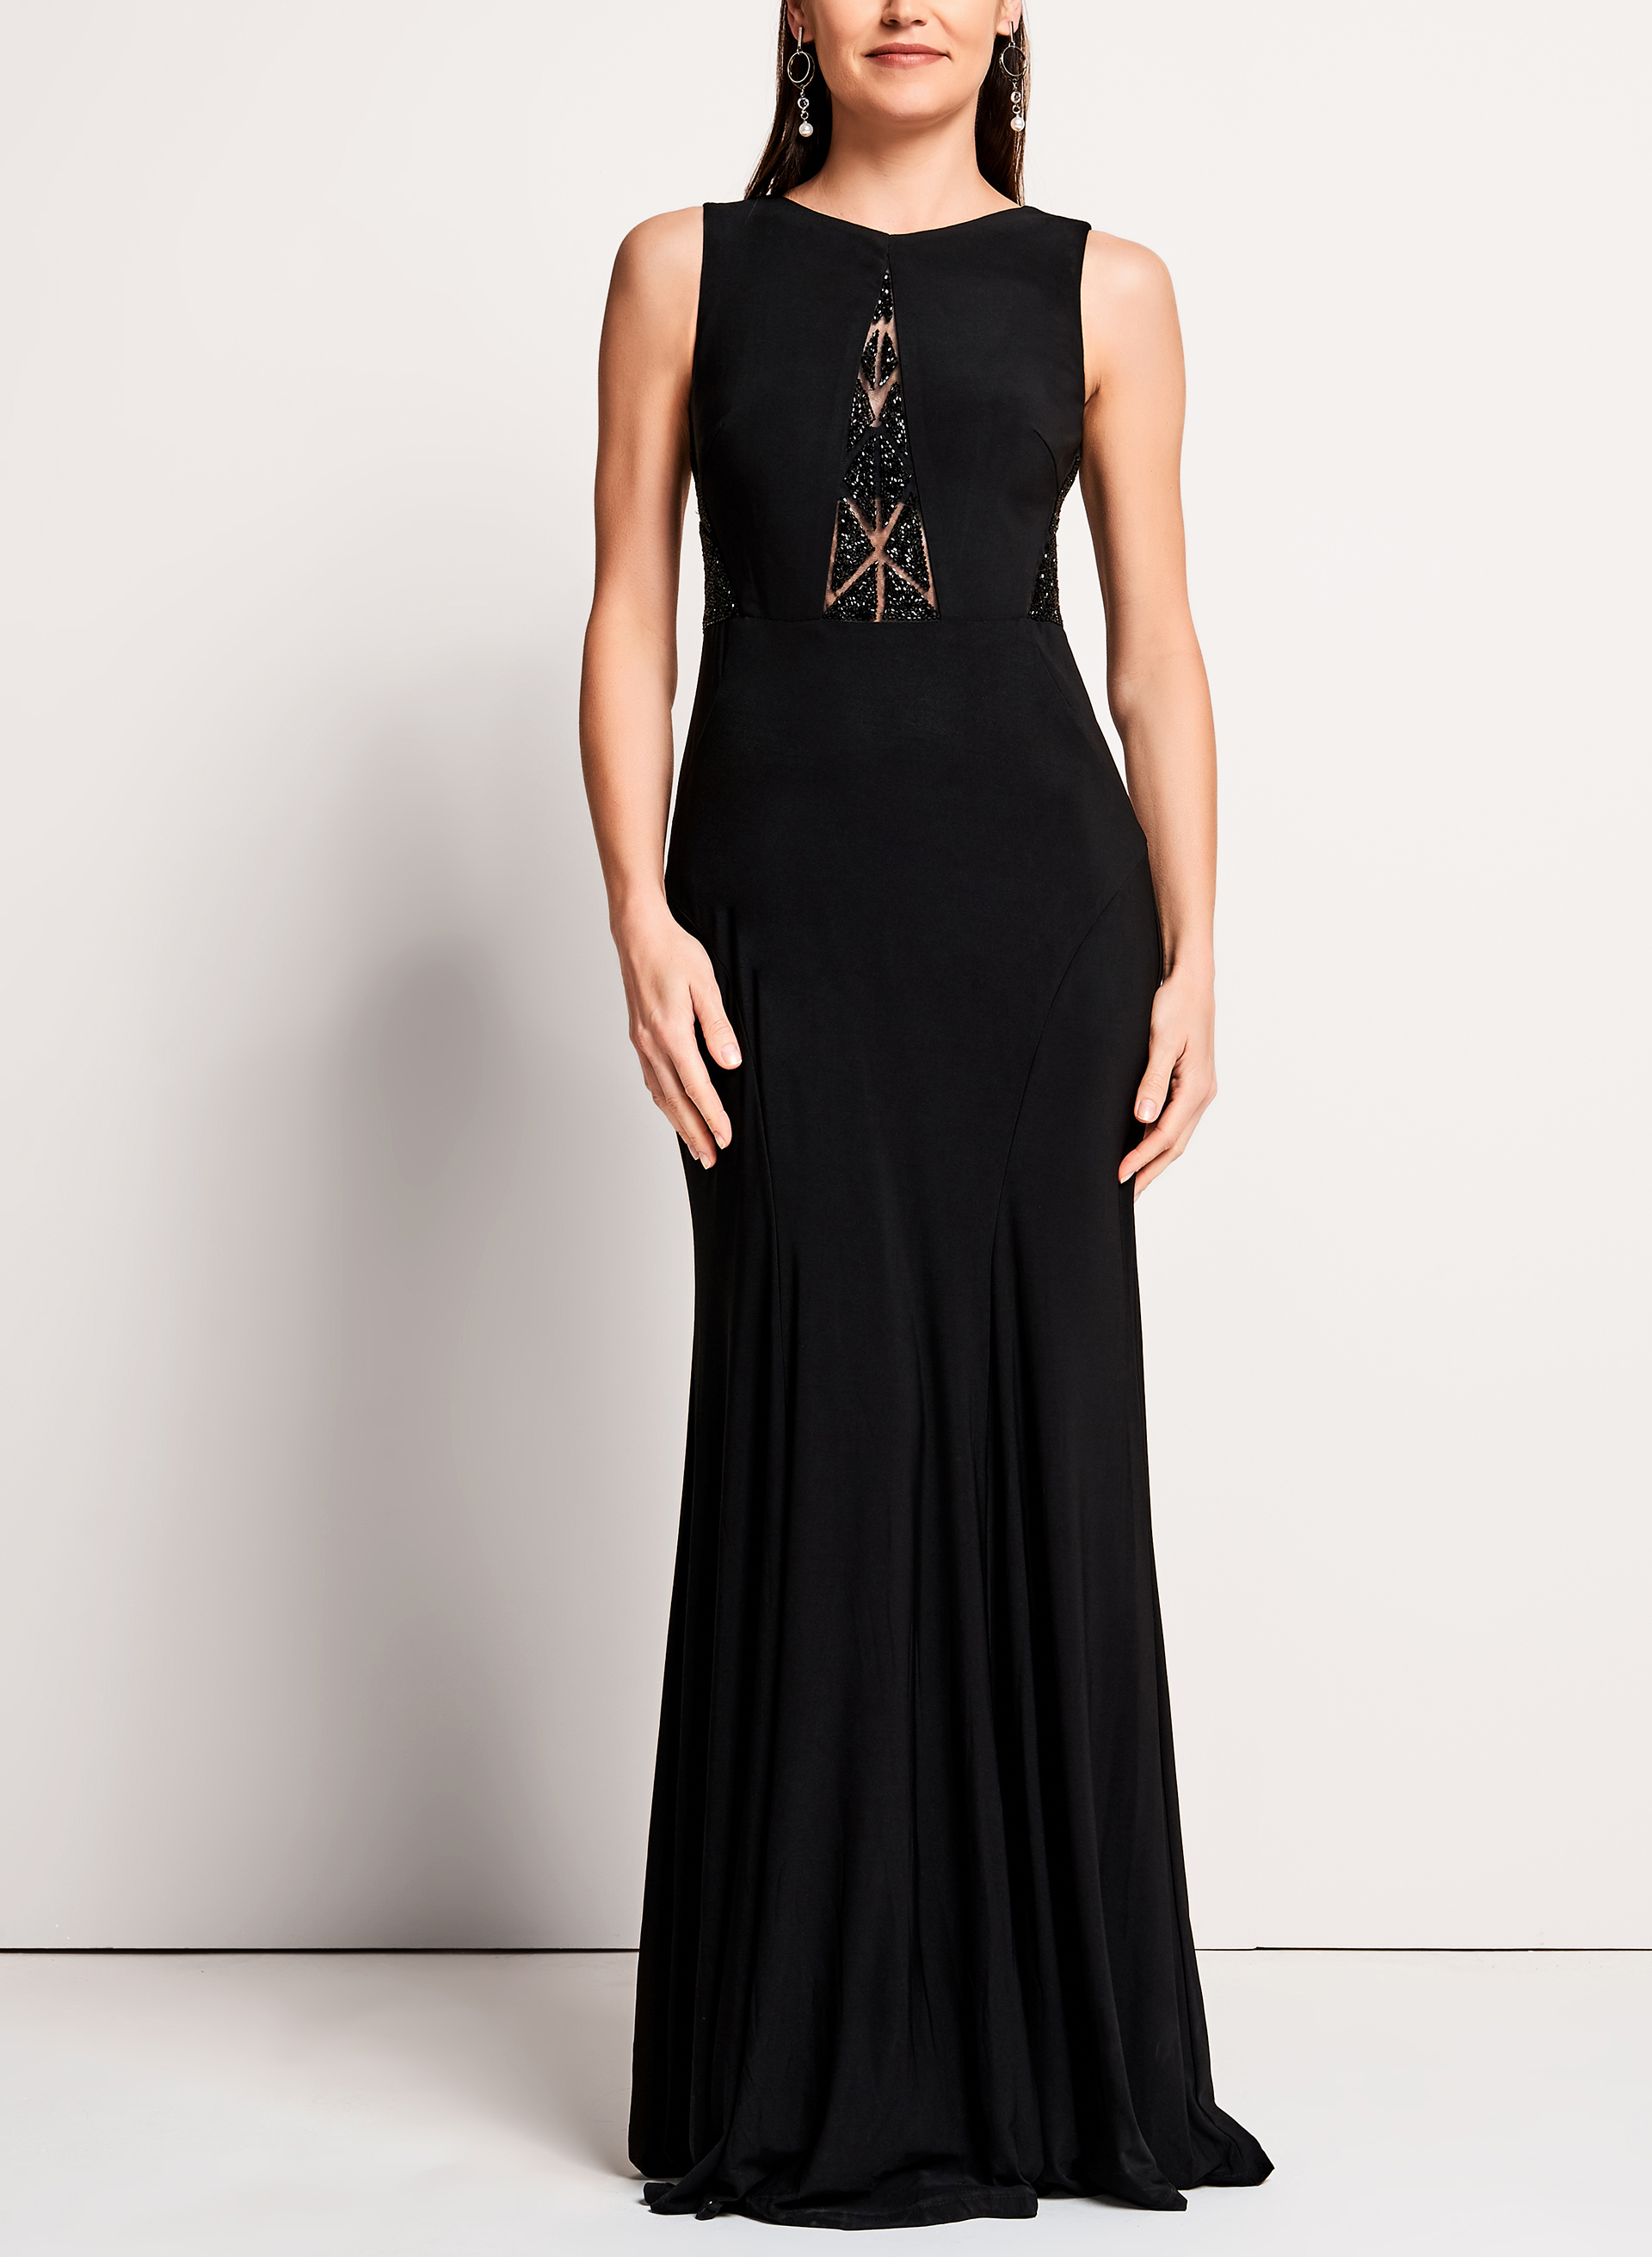 Beaded Mesh Jersey Gown, Black, hi-res